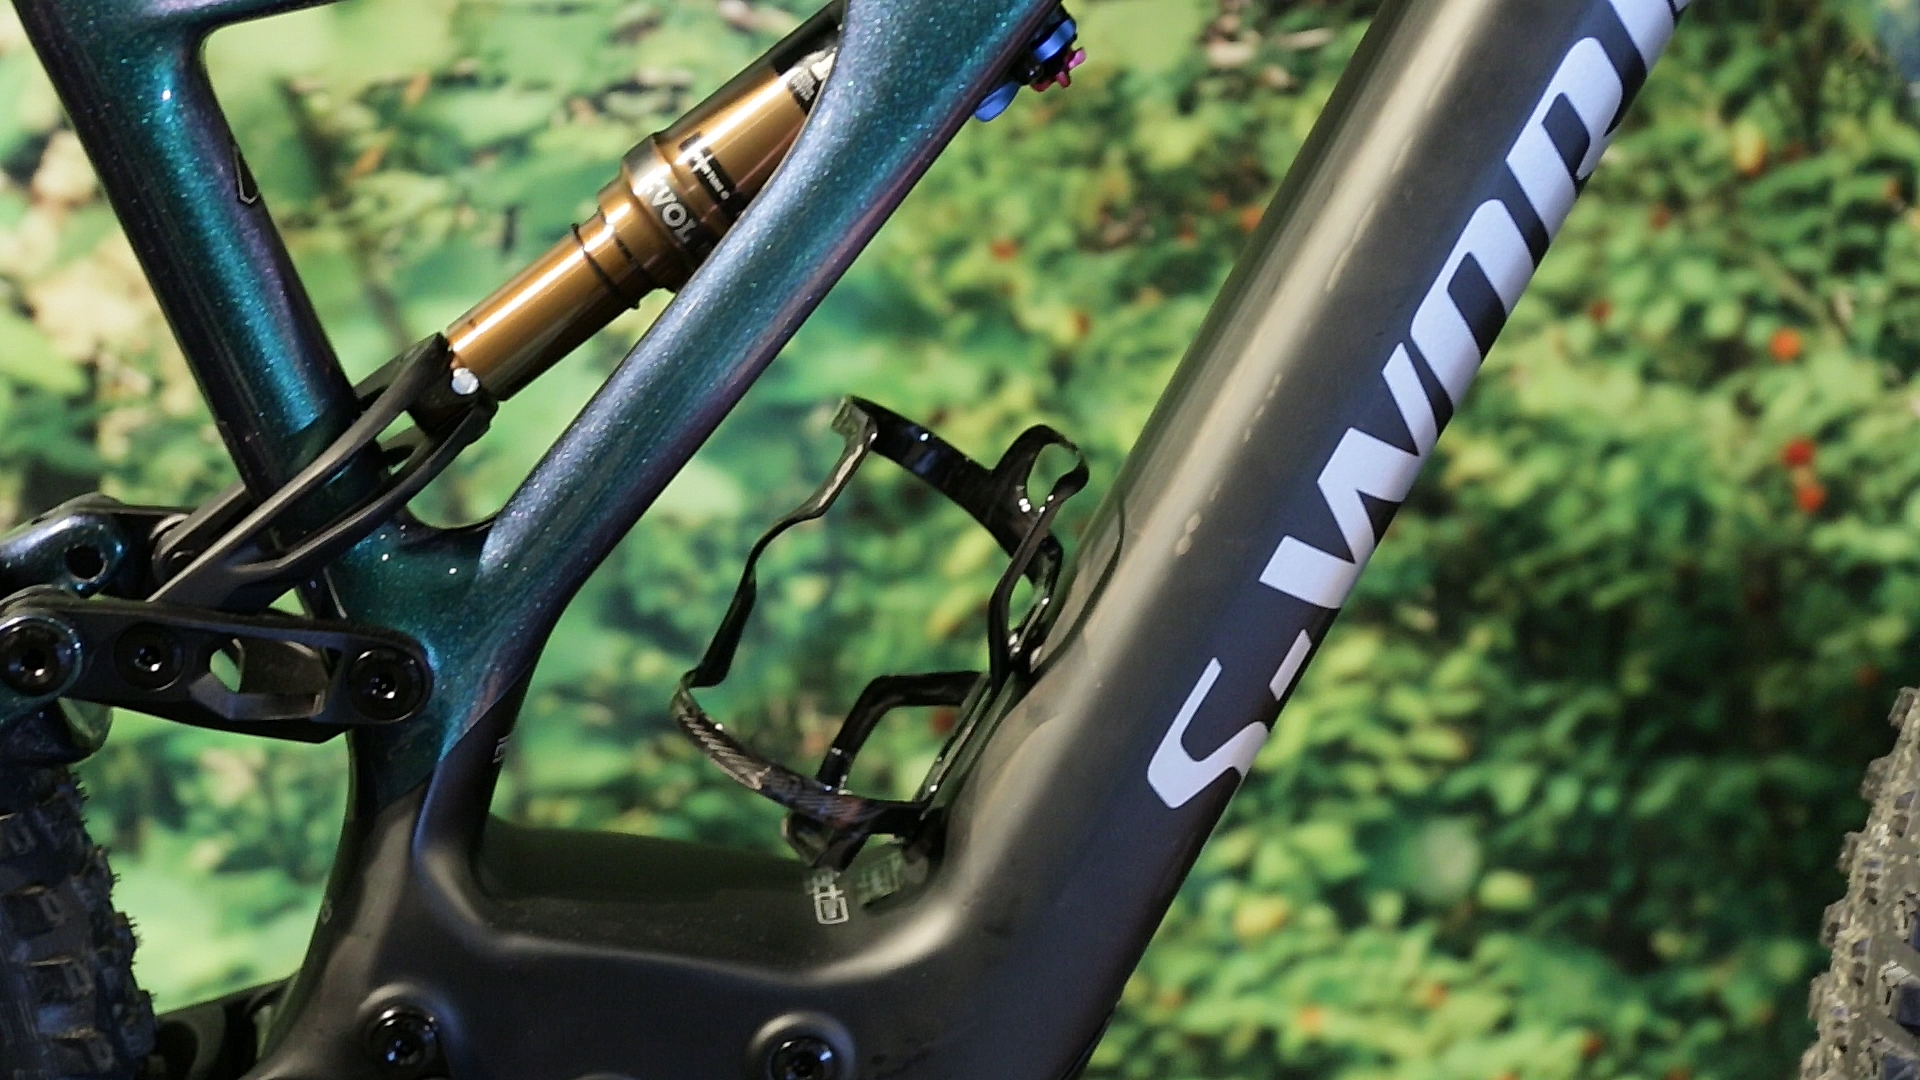 Is The New 2019 Specialized Turbo Levo The Best Looking